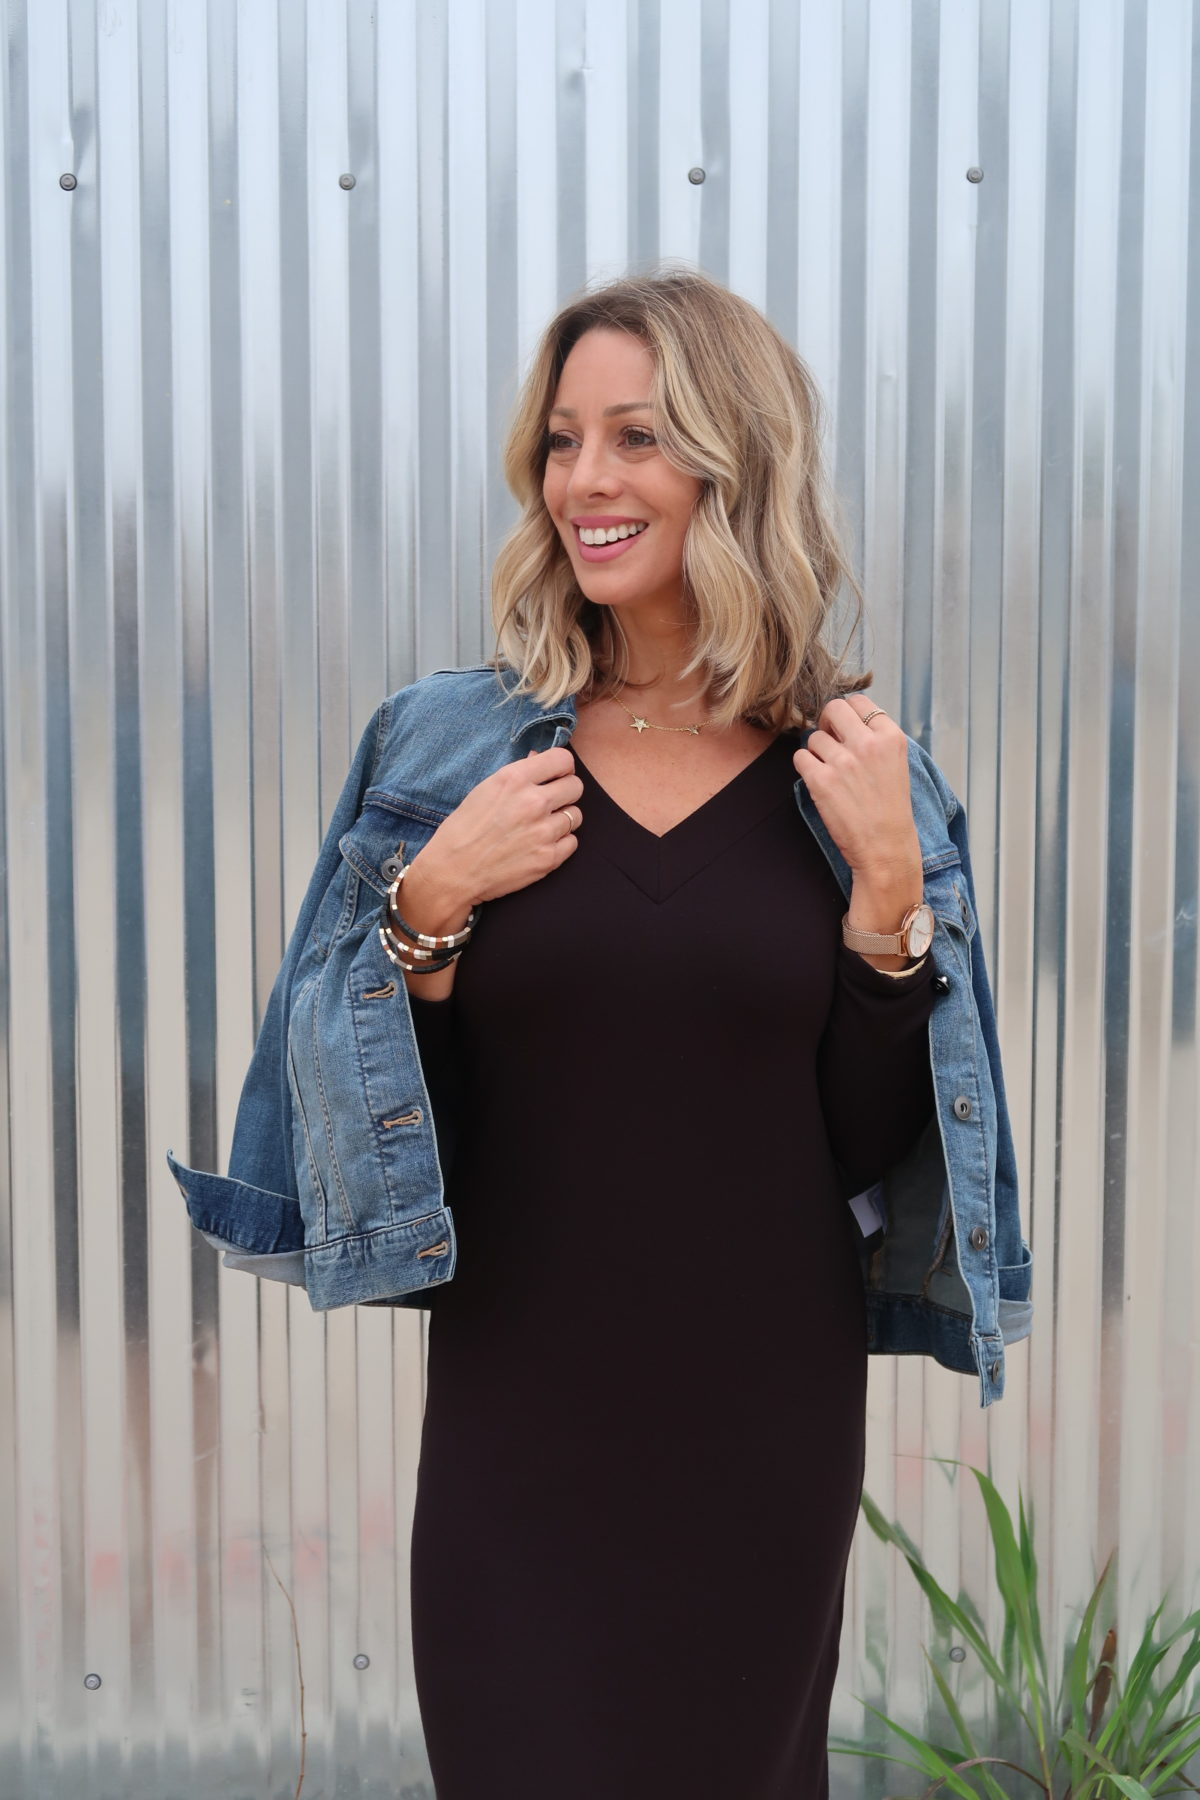 Jean Jacket, Black Dress, Star Necklace